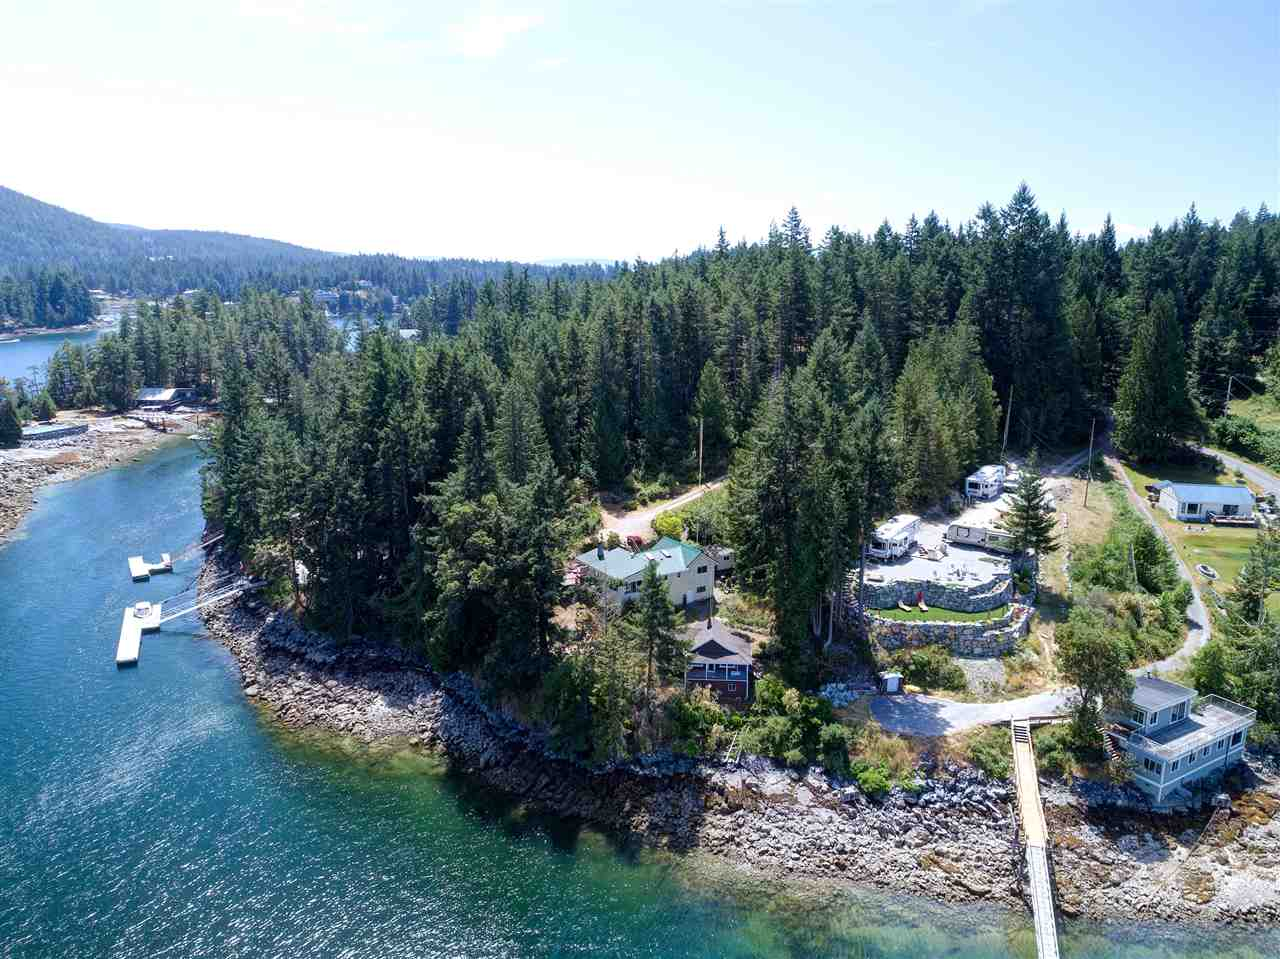 Photo 3: Photos: 13038 HASSAN Road in Madeira Park: Pender Harbour Egmont House for sale (Sunshine Coast)  : MLS® # R2187196